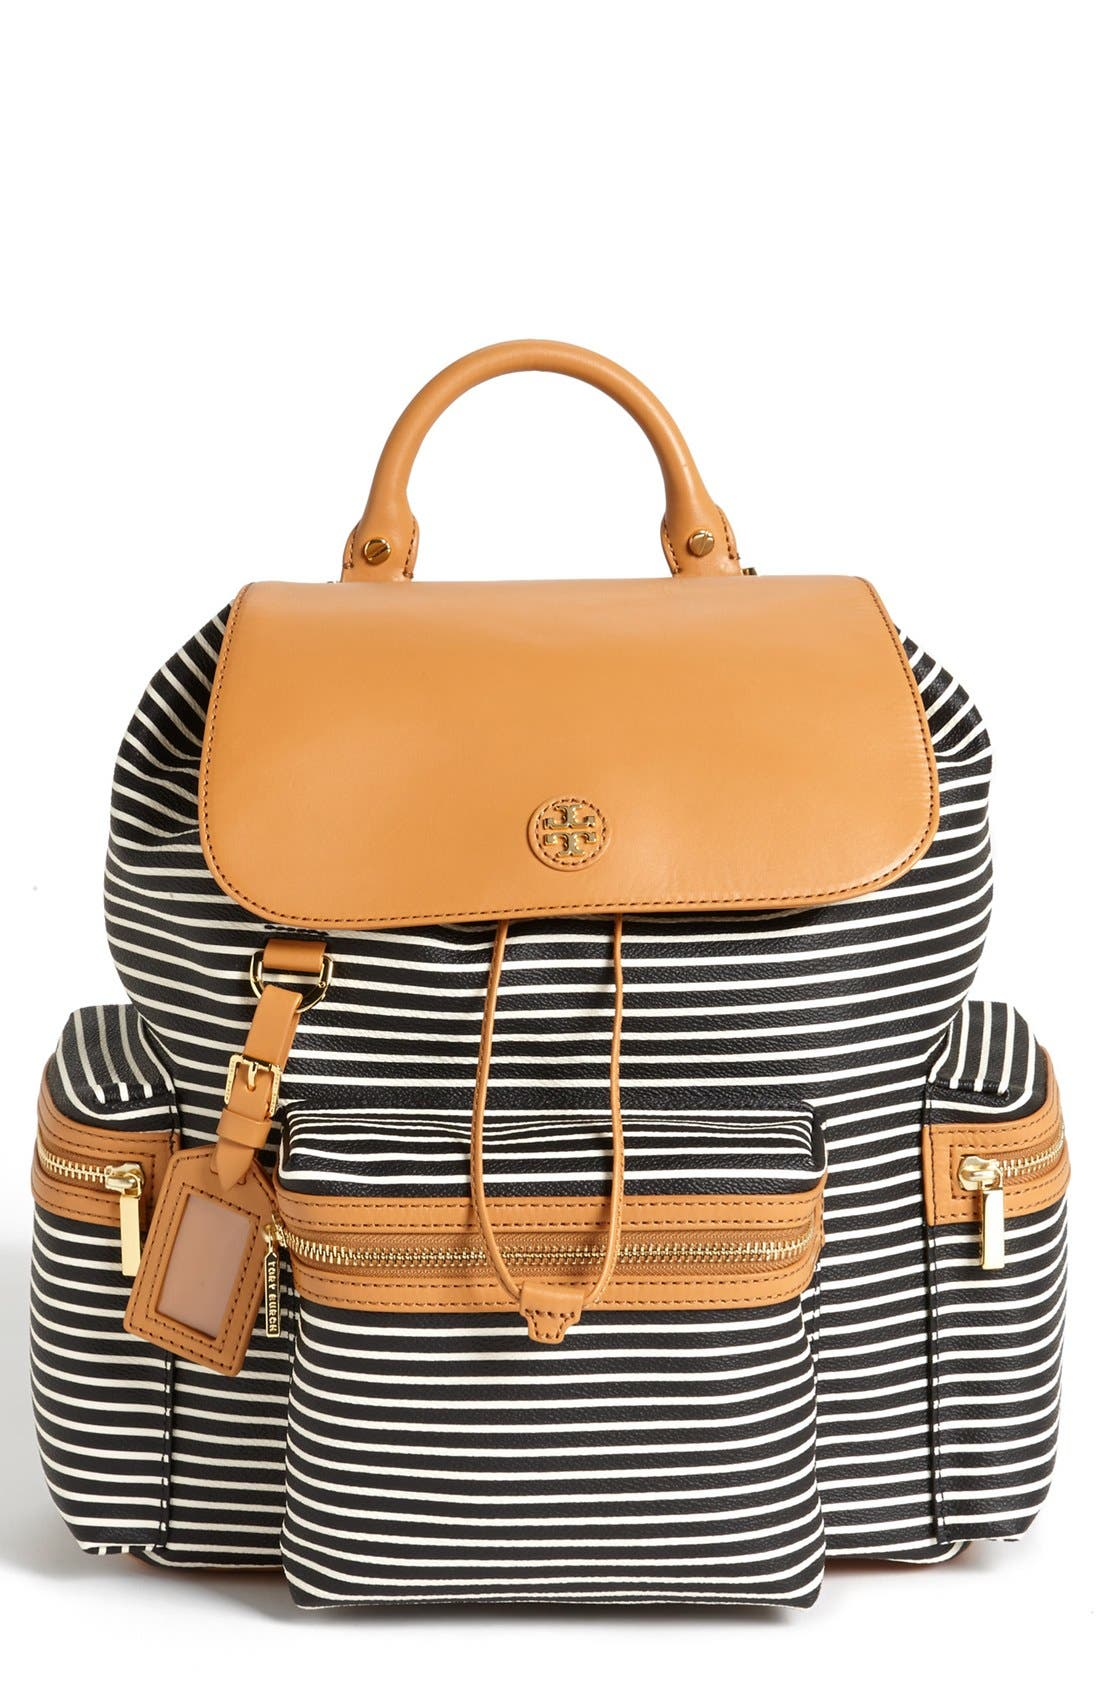 Alternate Image 1 Selected - Tory Burch 'Viva' Canvas & Leather Backpack